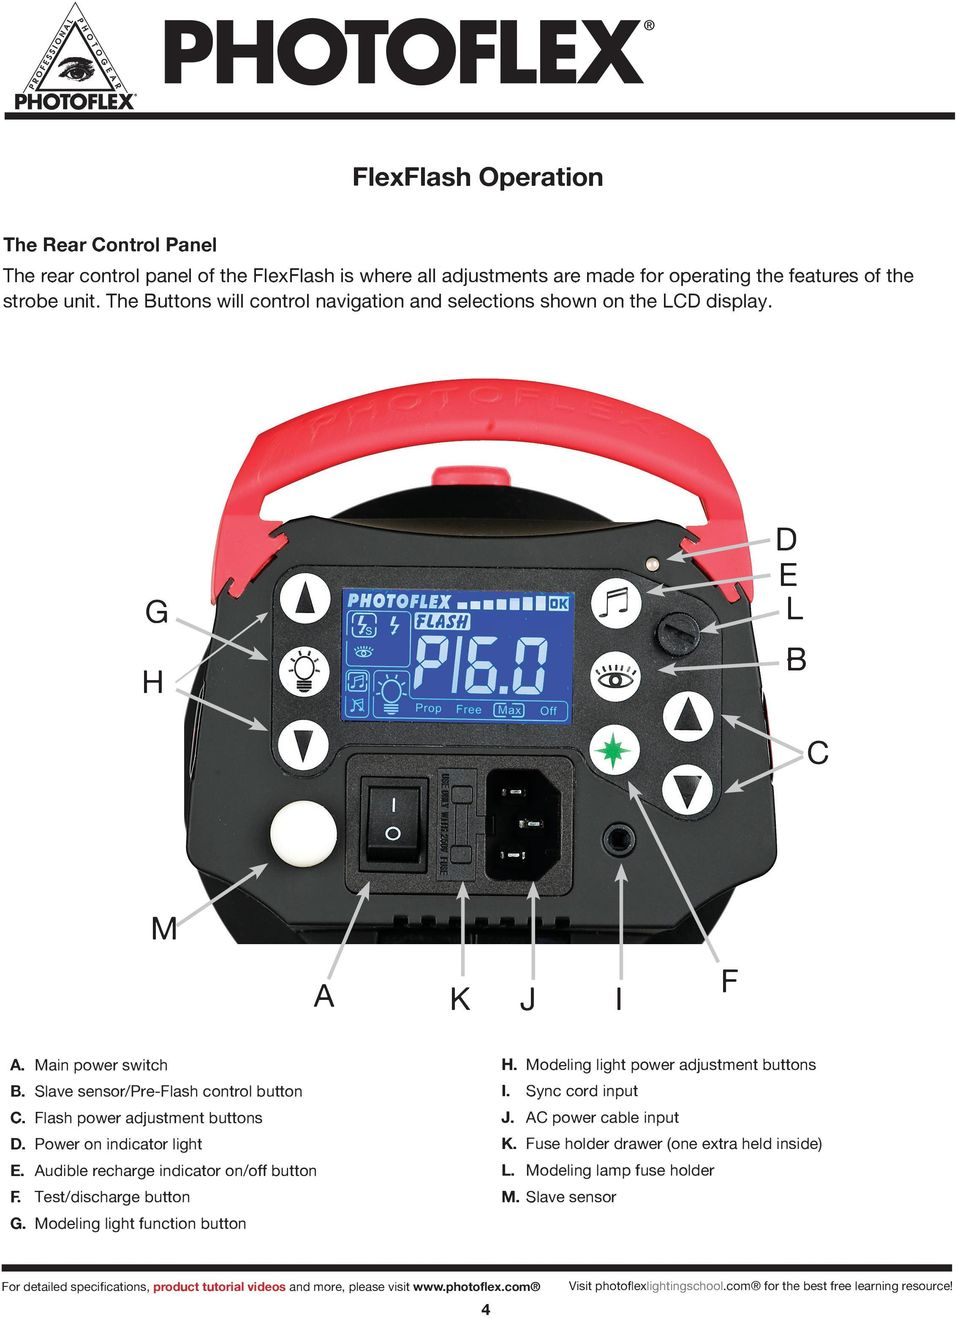 Flash power adjustment buttons D. Power on indicator light E. Audible recharge indicator on/off button F. Test/discharge button G. Modeling light function button H.